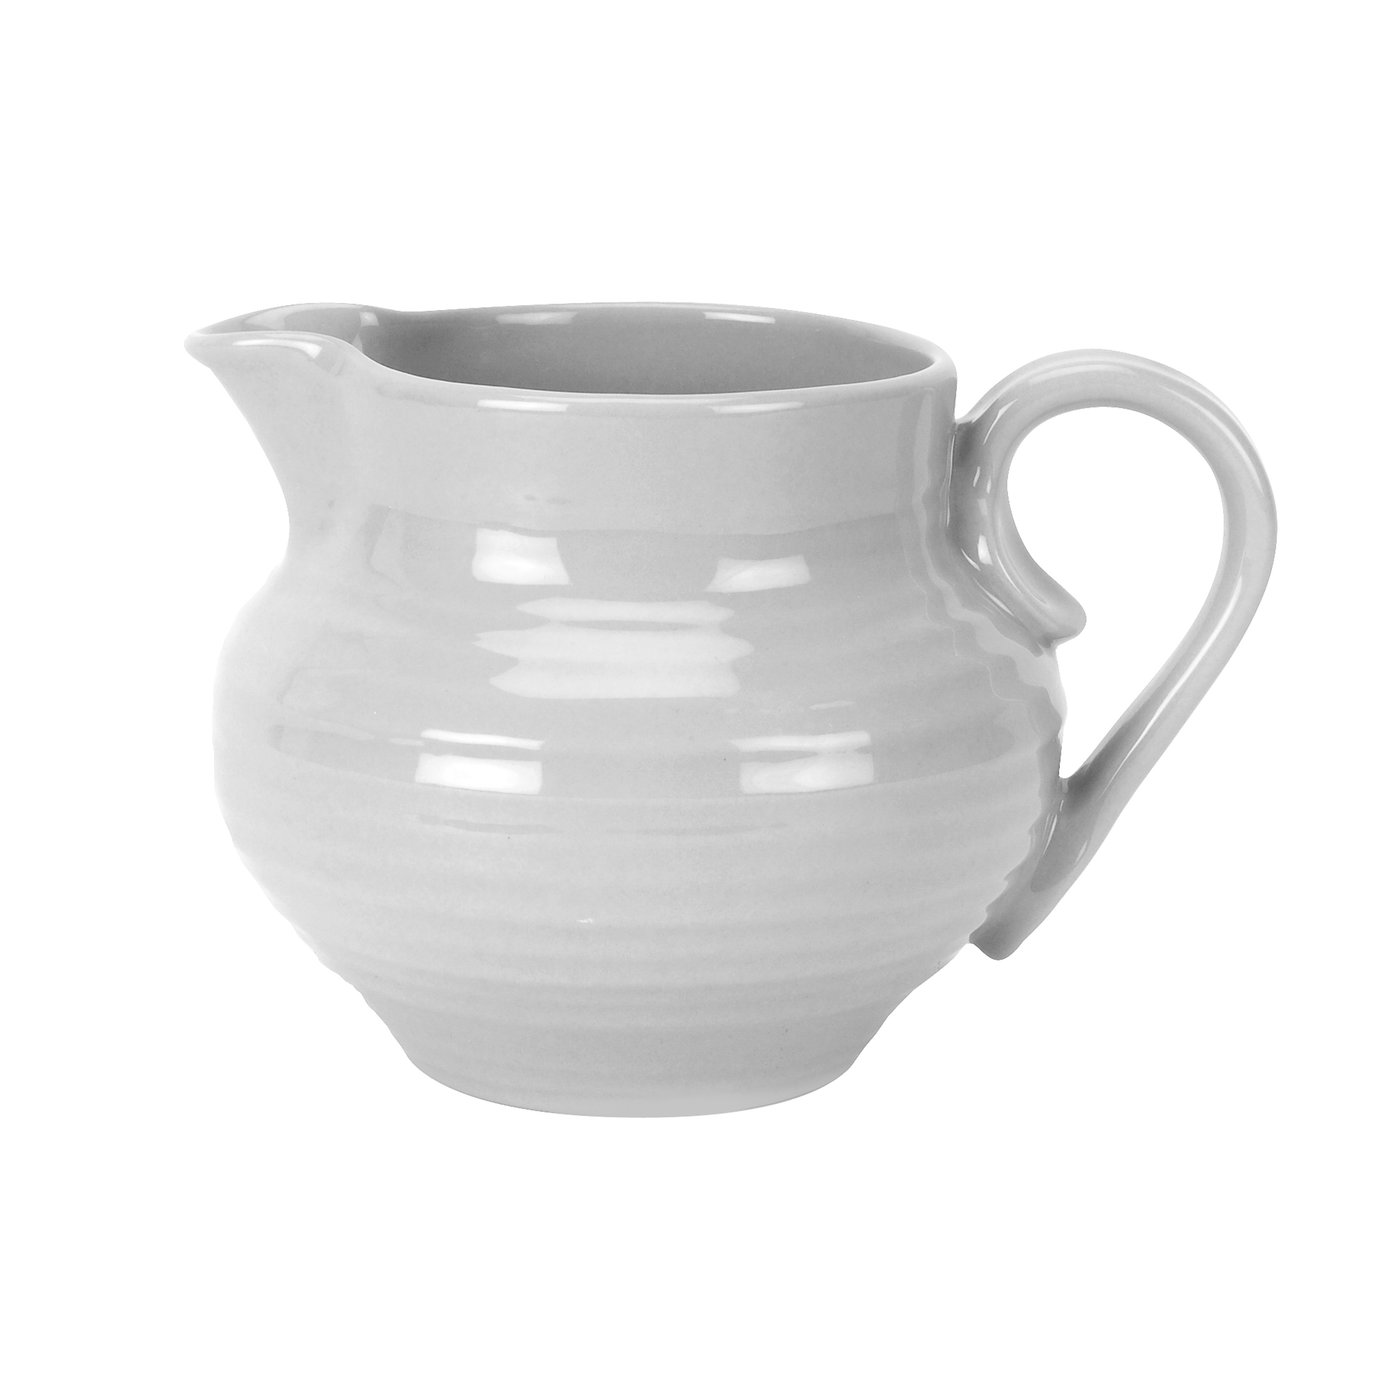 Portmeirion Sophie Conran Grey Cream Jug image number 0